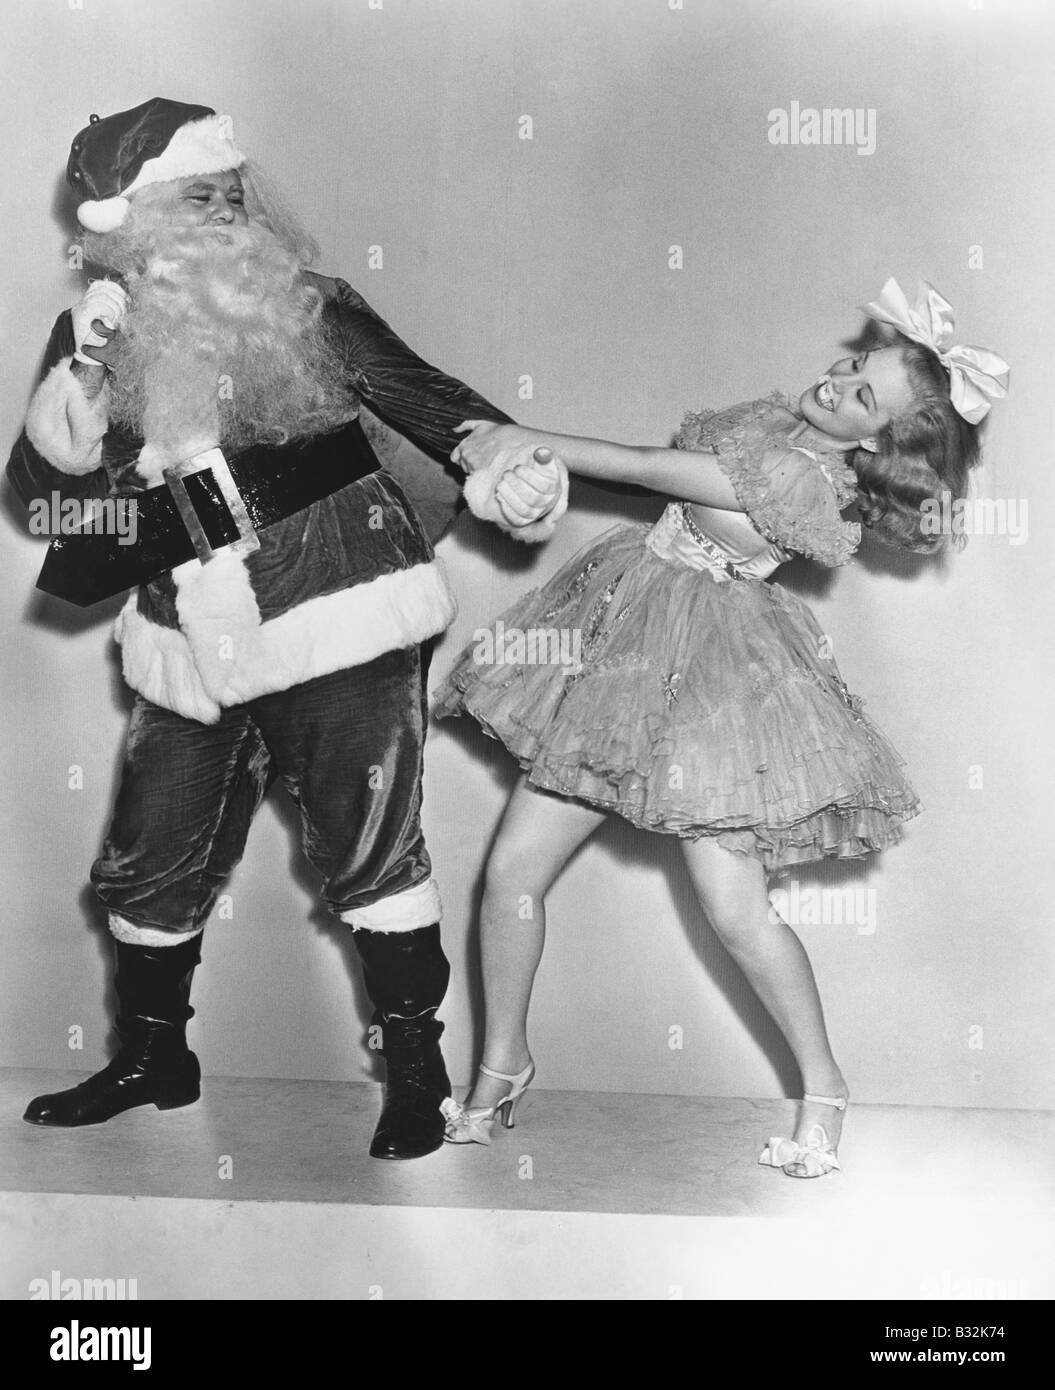 Woman trying to dance with Santa Claus - Stock Image